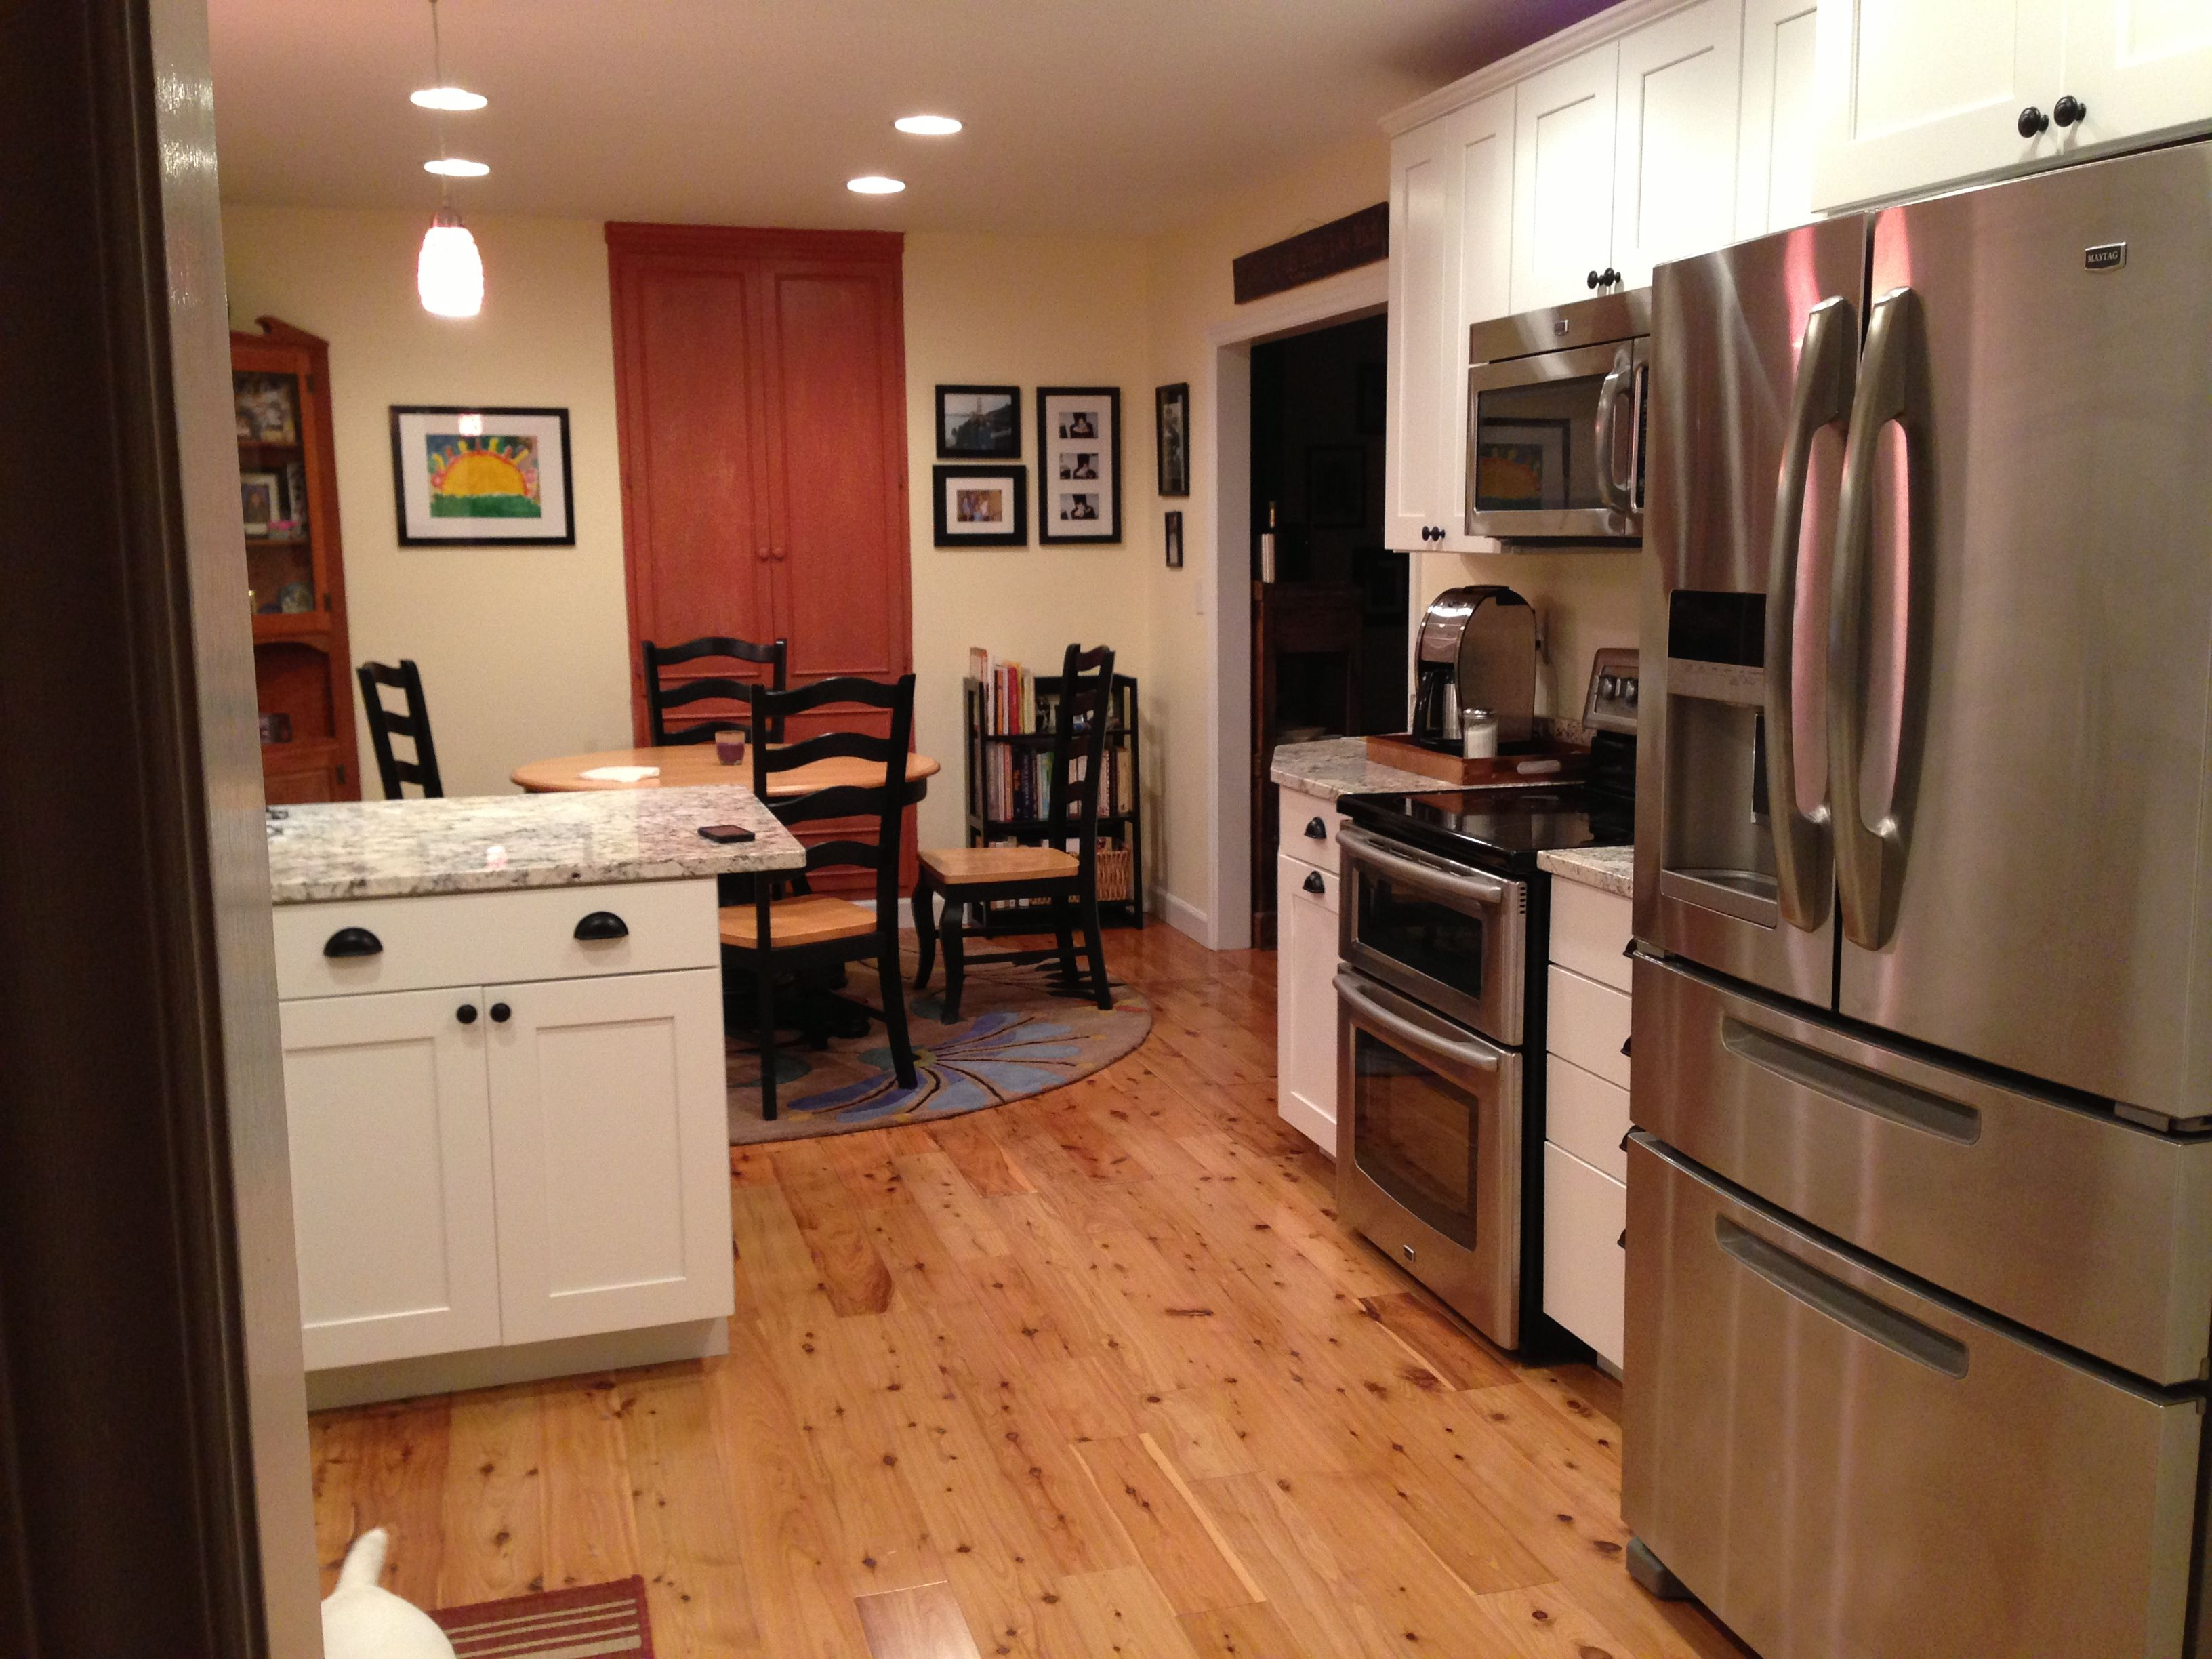 1970's Ranch kitchen remodel | Kitchen / home remodel sbook ... on 1970 bathroom remodel, 1970s tri-level house plans, 1970 home remodel, 1970s modern dresser, 1970s bathroom countertop, 1970s kitchen update, 1970s basement, 1970s kitchen design, 1970s bathroom makeover, 1970s kitchen before and after, 1970s mushroom wall decor, 1970s kitchen decor, 1970s garage doors, 1970s kitchen stove, with a peninsula kitchens remodel, 1970s kitchen table, 1970s paint, 1970s ugly laminate wood buffet, 1970s retro dresser, 1970s kitchen appliances,